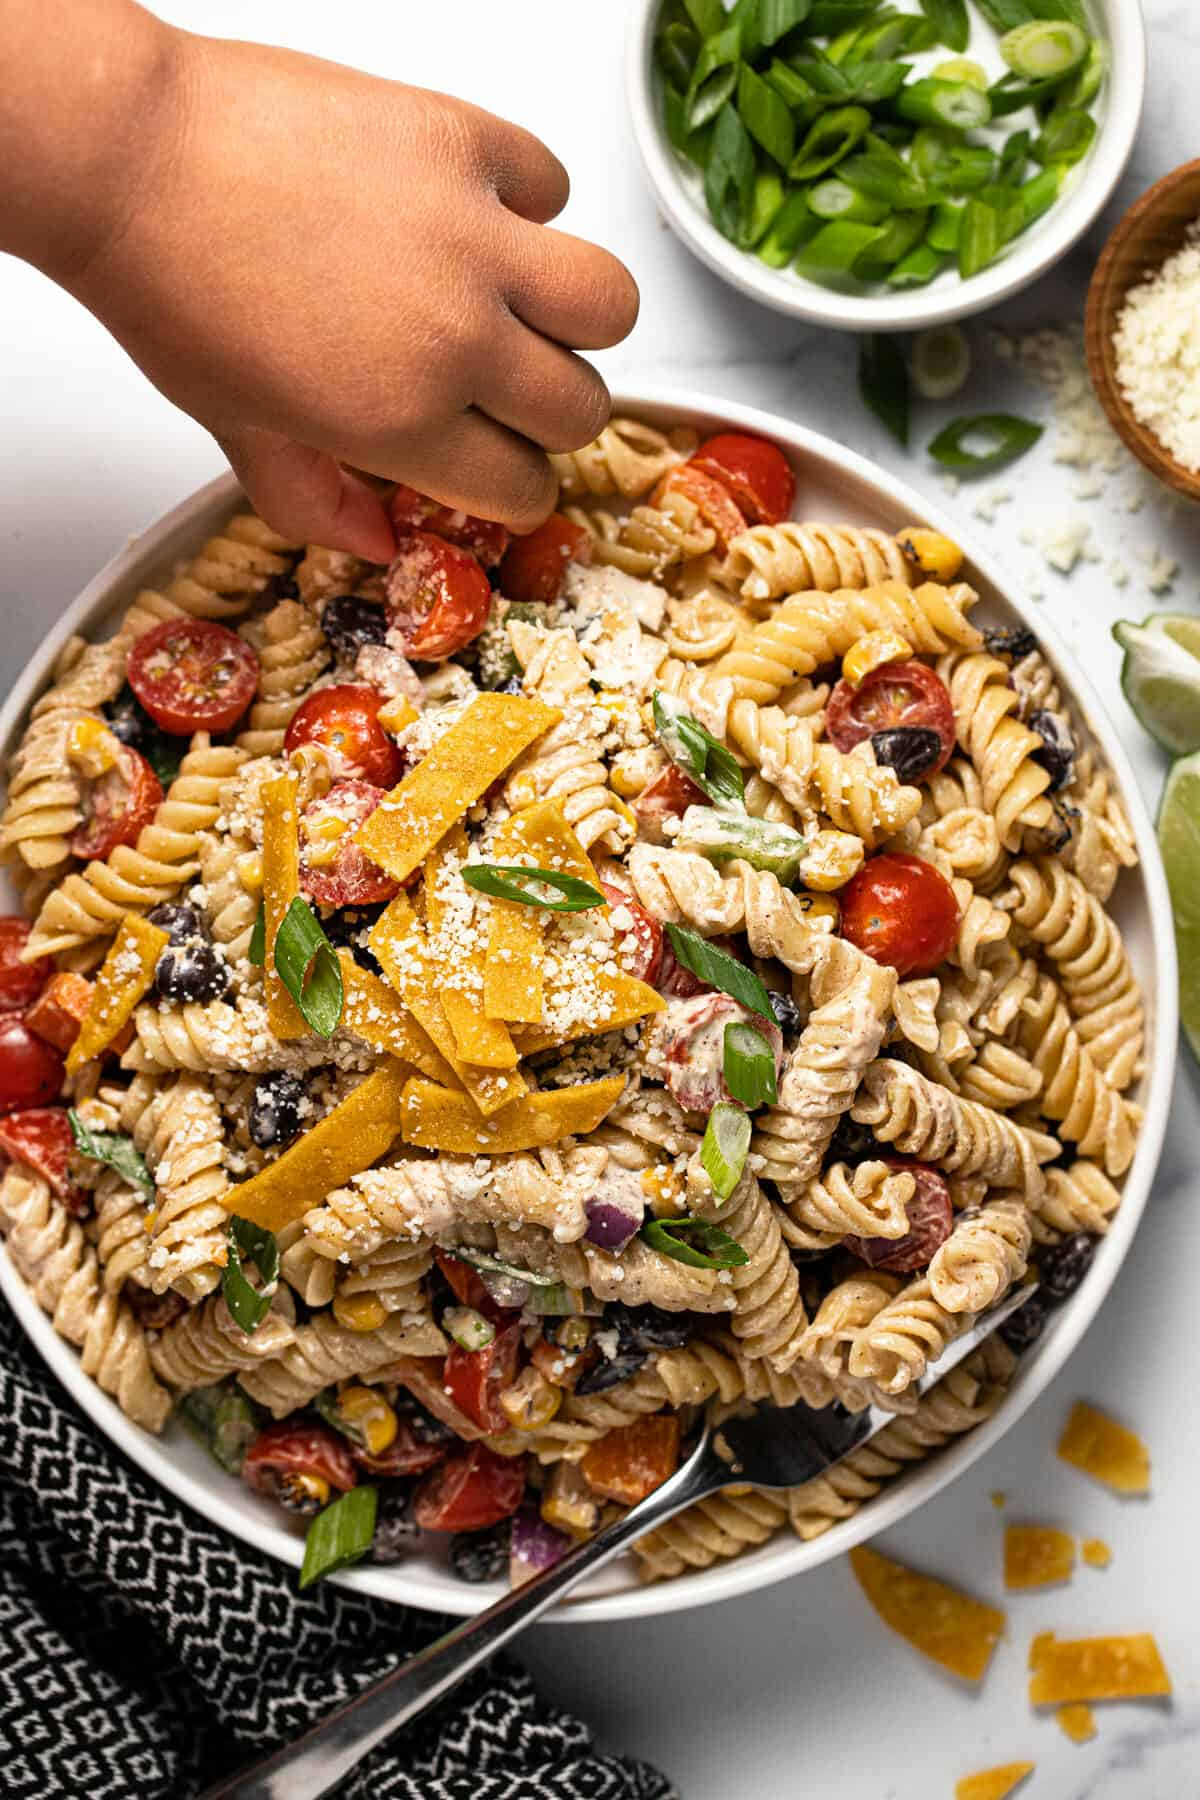 Small hand reaching for a tomato that's in a large white bowl of taco pasta salad